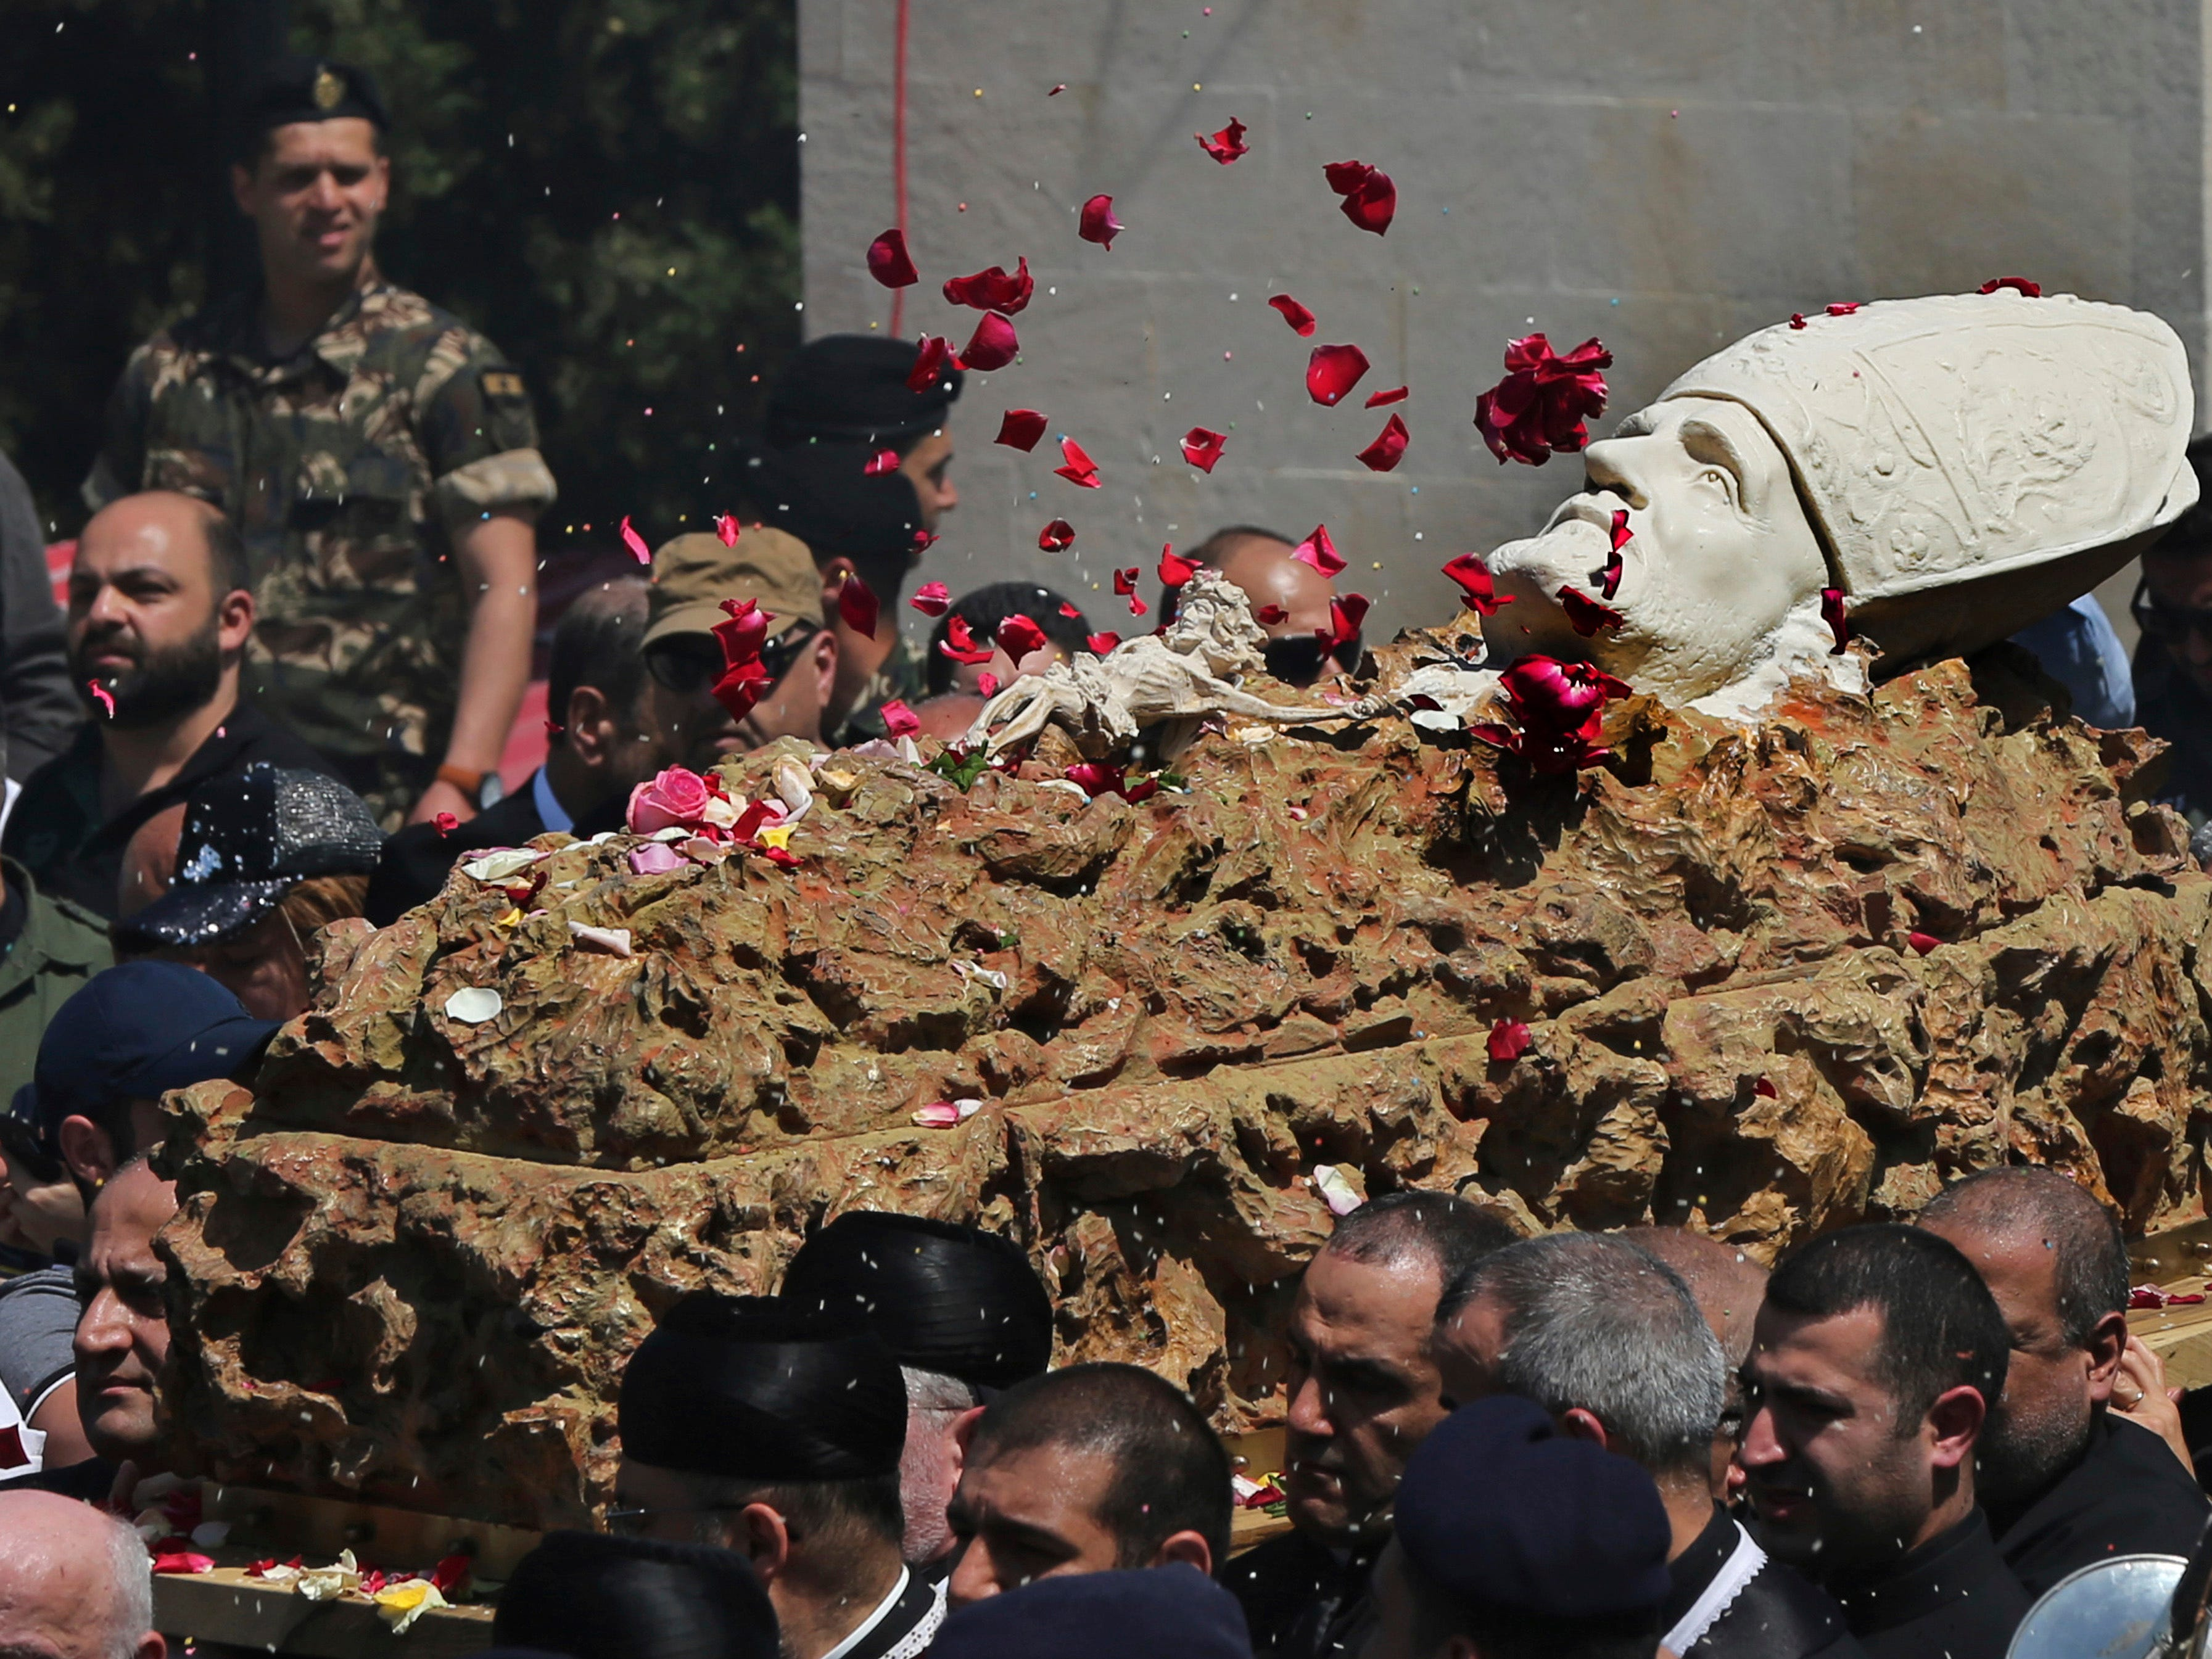 Mourners throw flowers on the coffin of former Maronite Patriarch Cardinal Mar Nasrallah Boutros Sfeir, as it arrived at the seat of the Maronite Church, in the village of Bkirki, north of Beirut, Lebanon, Wednesday, May 15, 2019. Sfeir, who served as spiritual leader of Lebanon's largest Christian community through some of the worst days of the country's 1975-1990 civil war, died Sunday and his funeral will take place Thursday May 16.